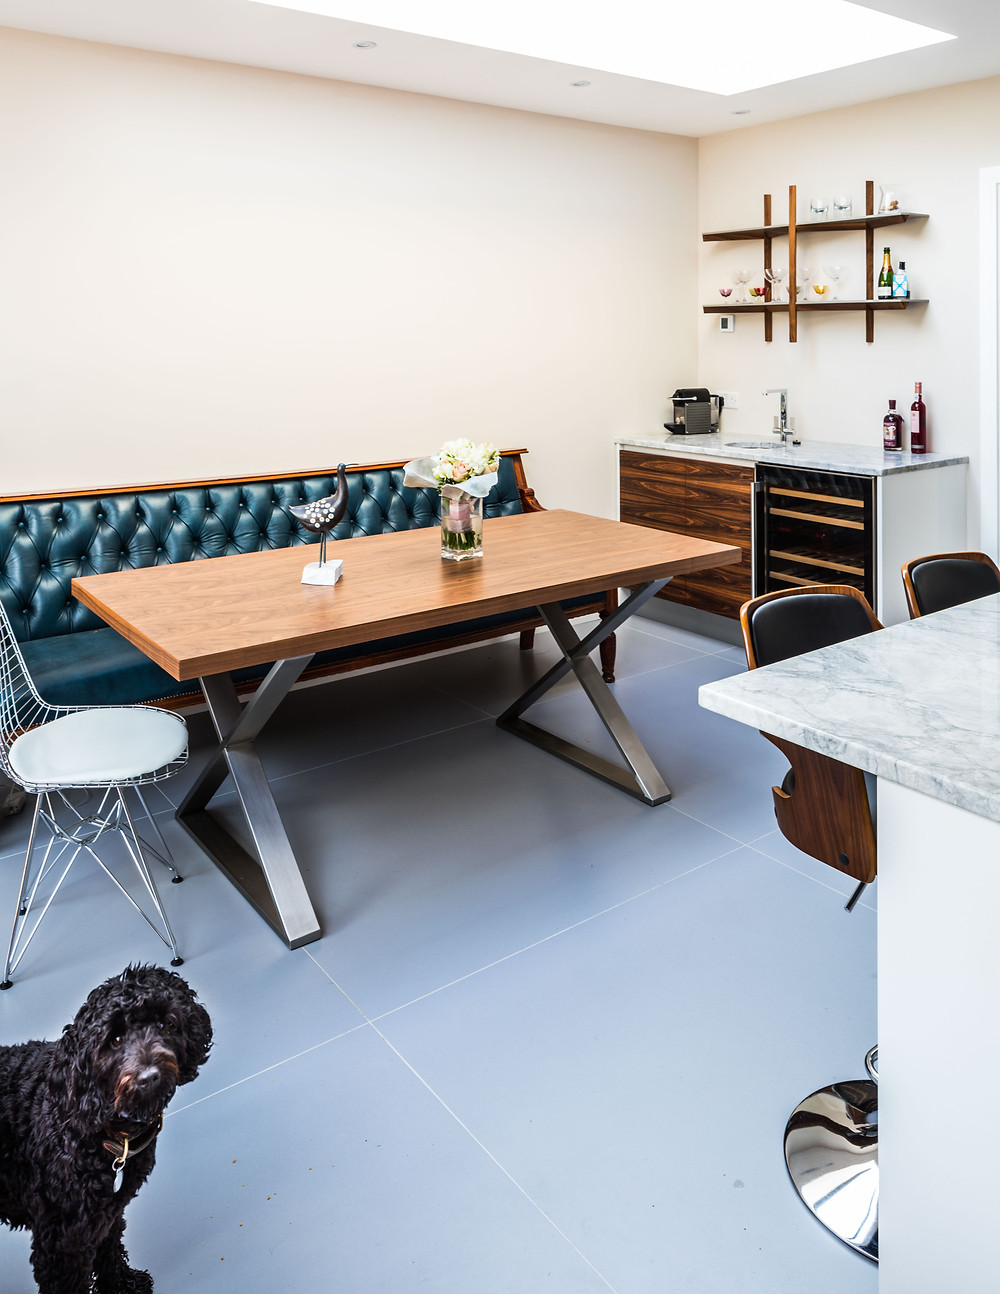 Pickles the dog sitting in a spacious kitchen diner space designed and built by Steven Andrews Bespoke